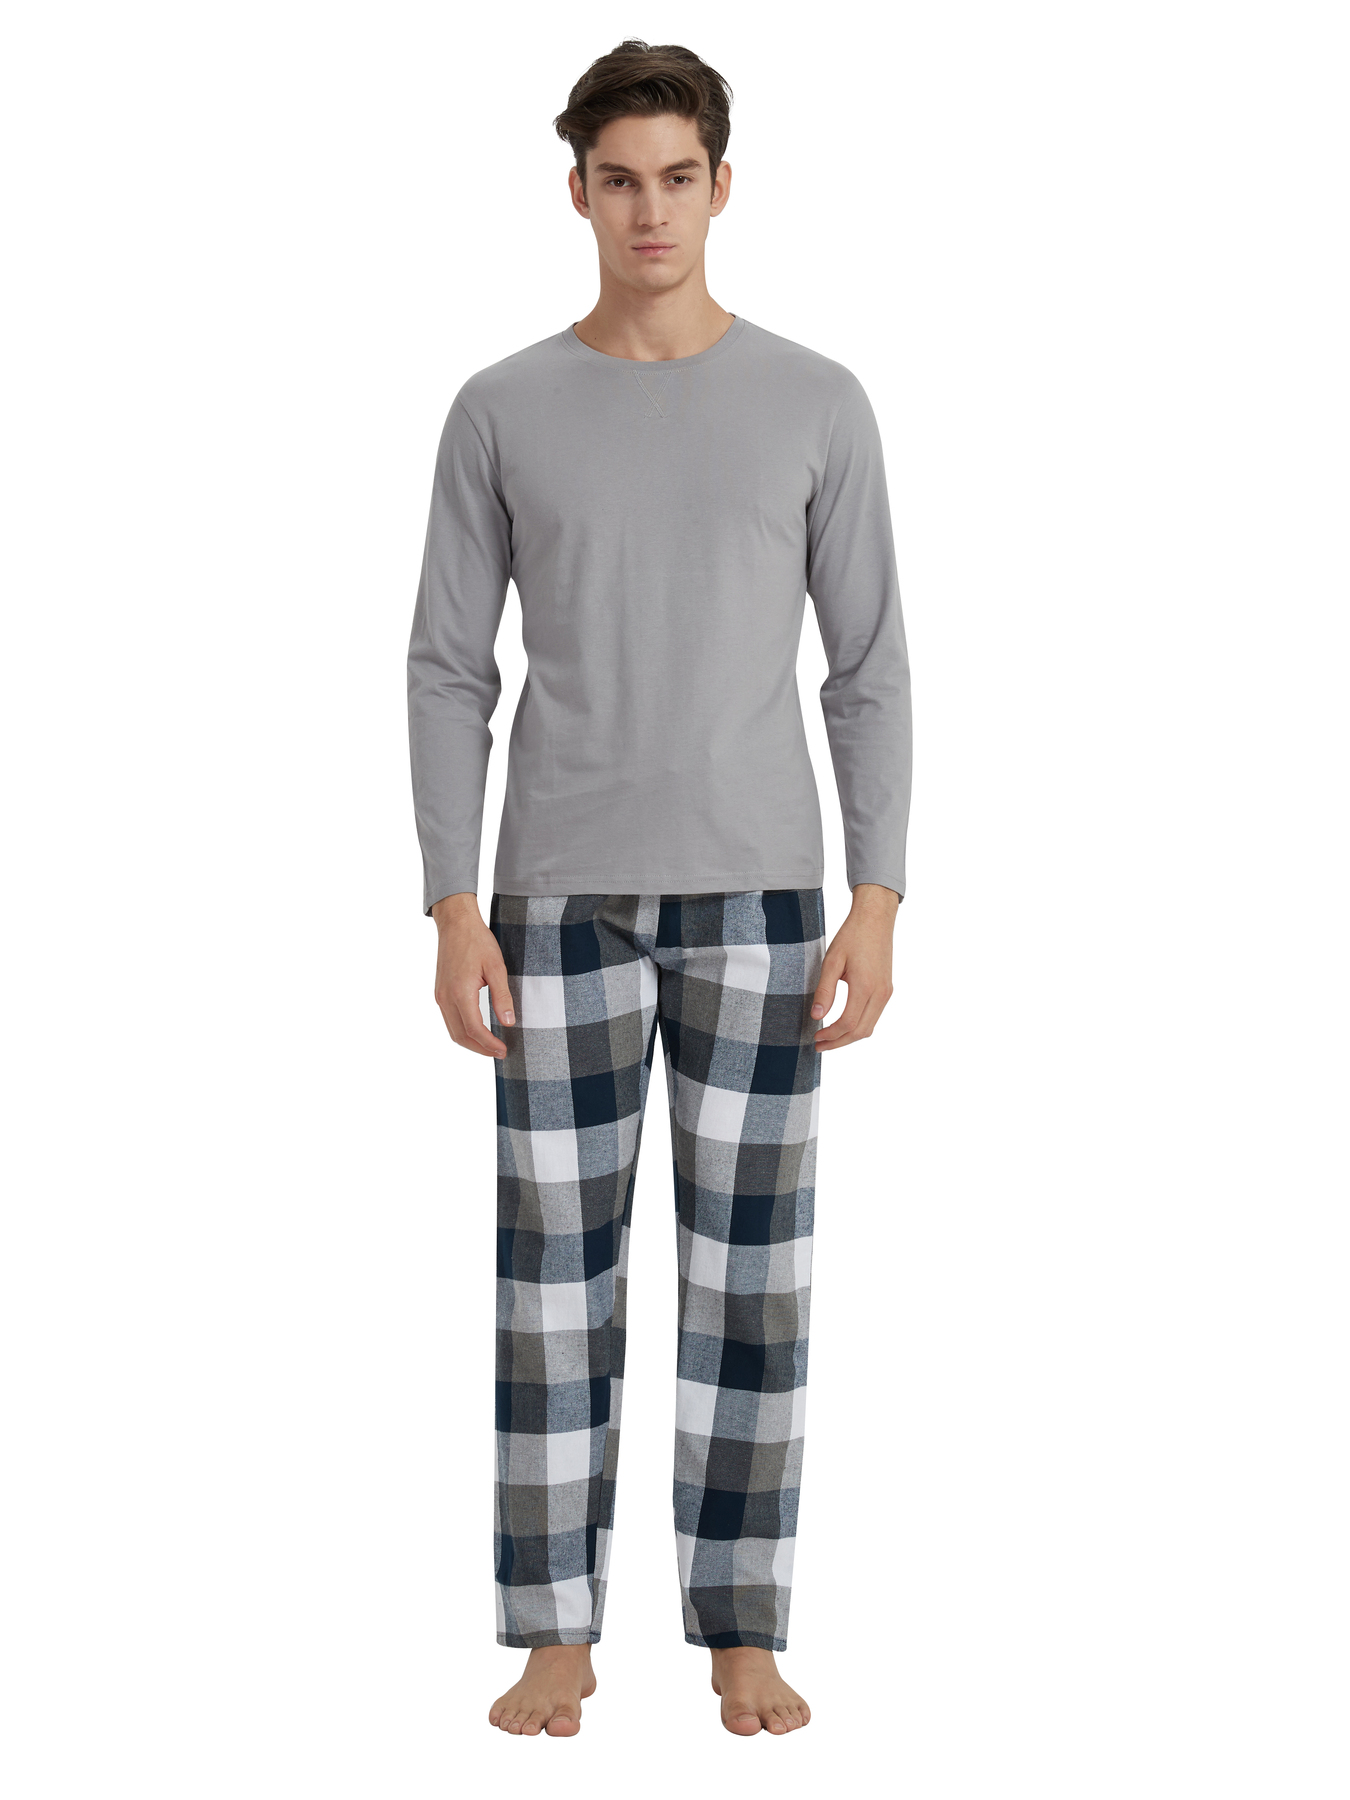 PimpamTex-Man Pajamas 100% Cotton Flannel Long Sleeve And Pants Long-